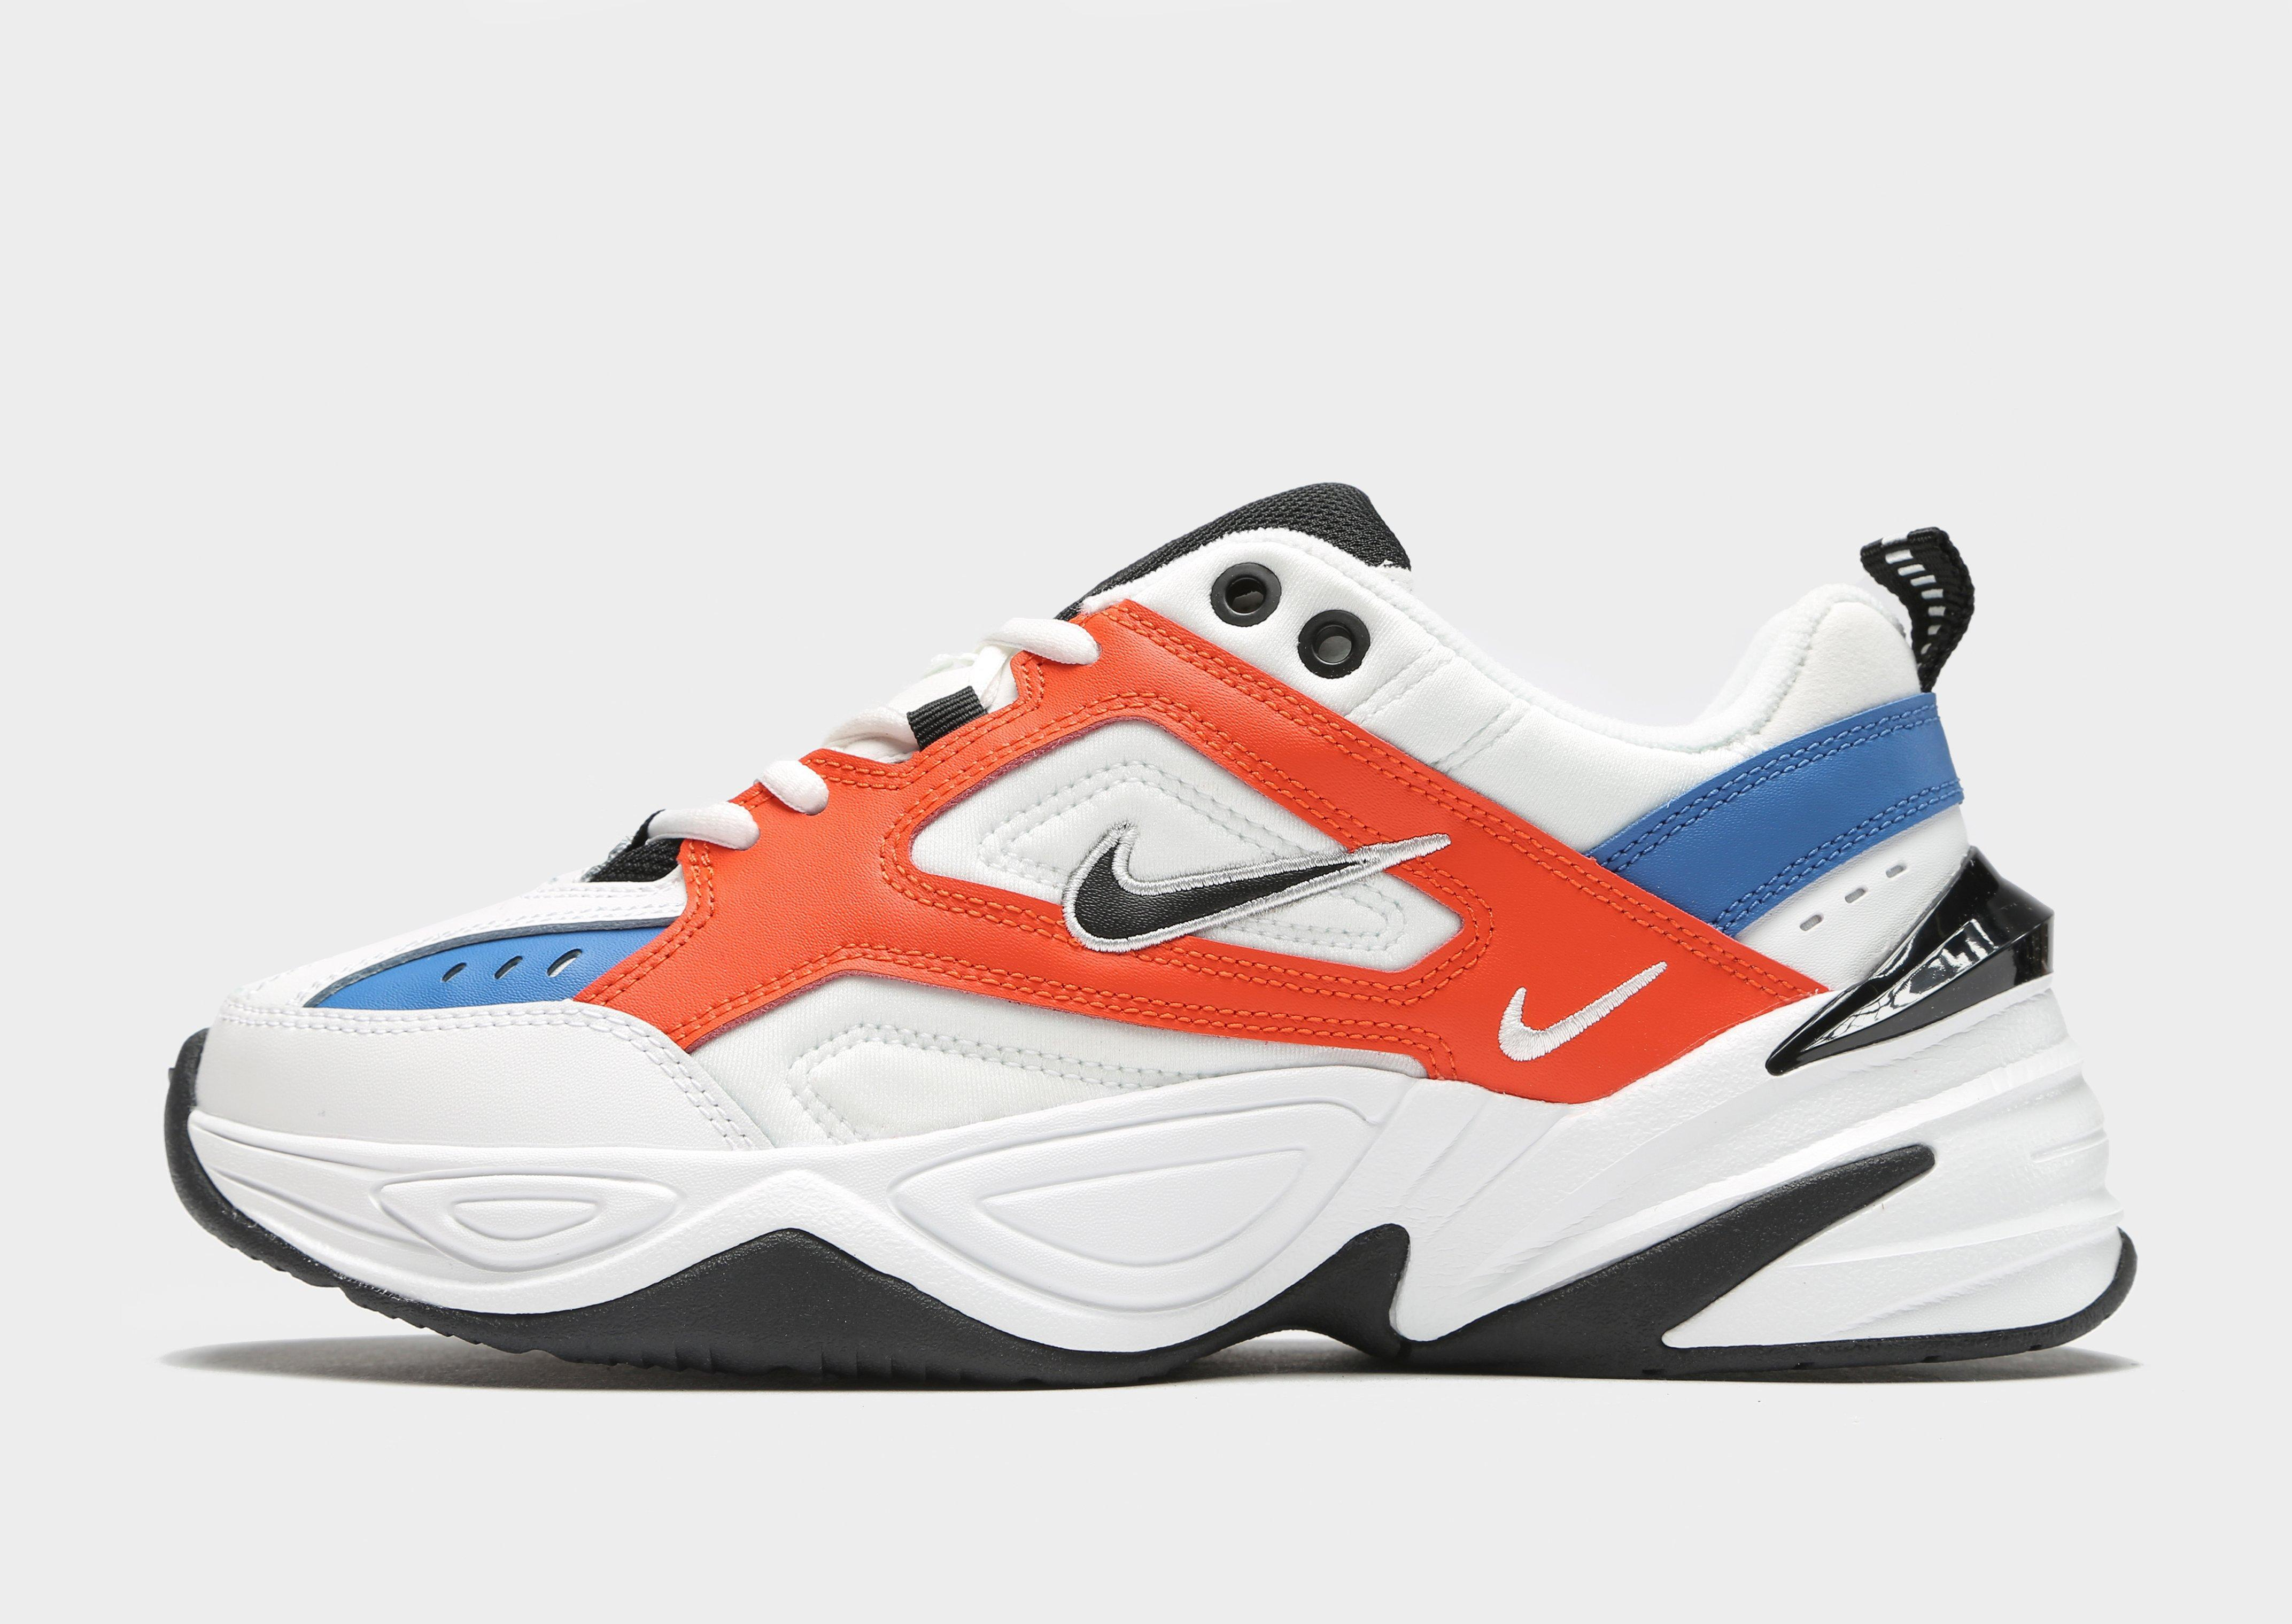 Nike White Red And Blue M2k Tekno